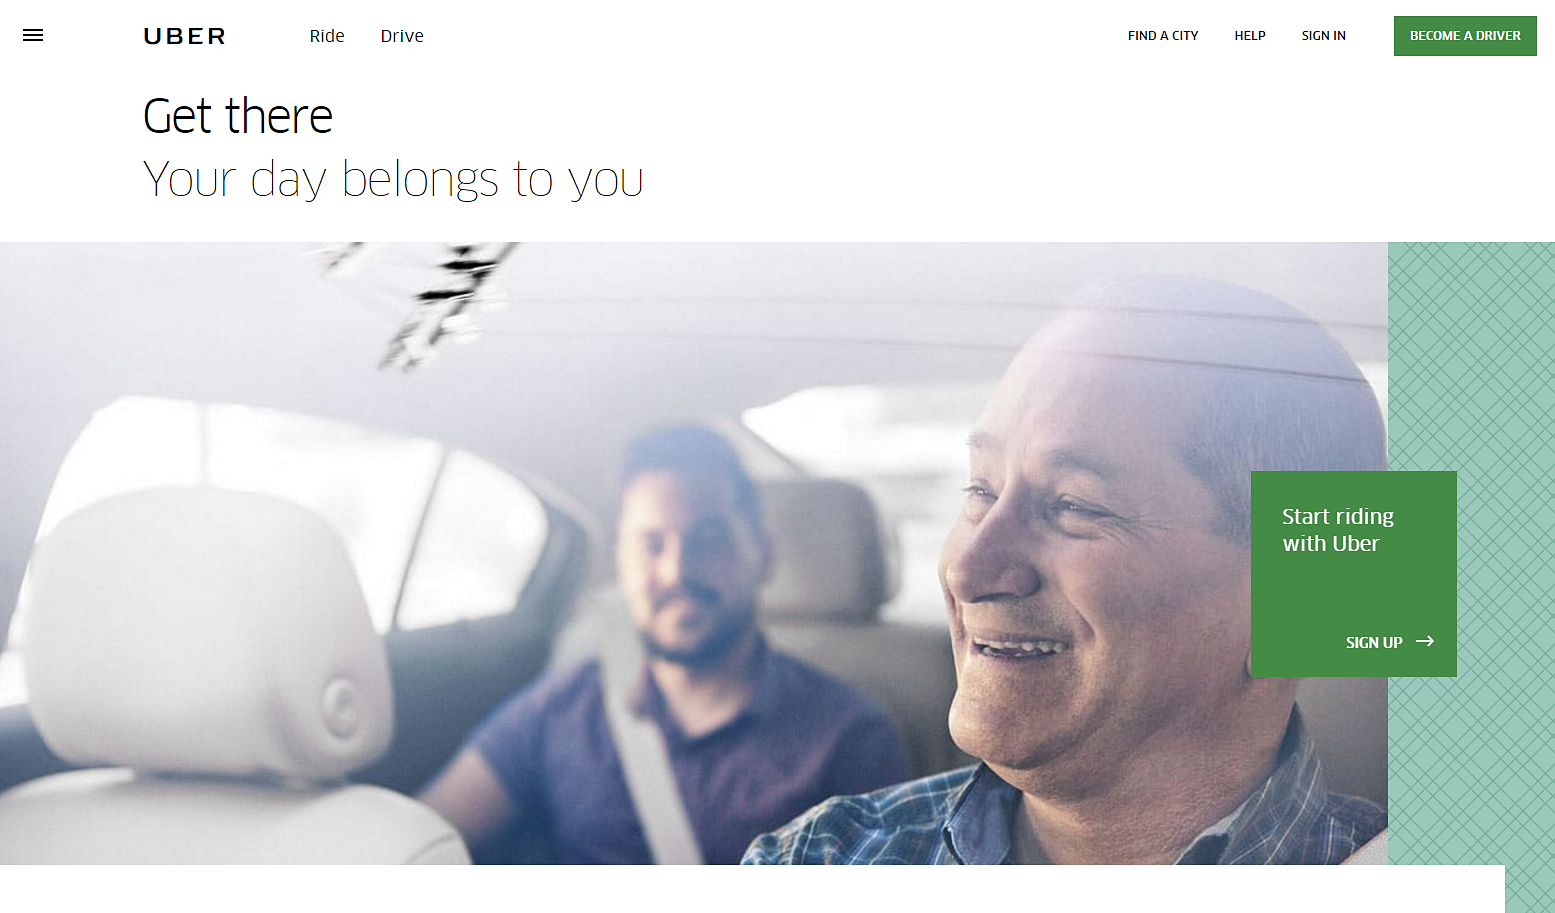 Uber focuses on evoking emotion in their copy and imagery using meaningful design.